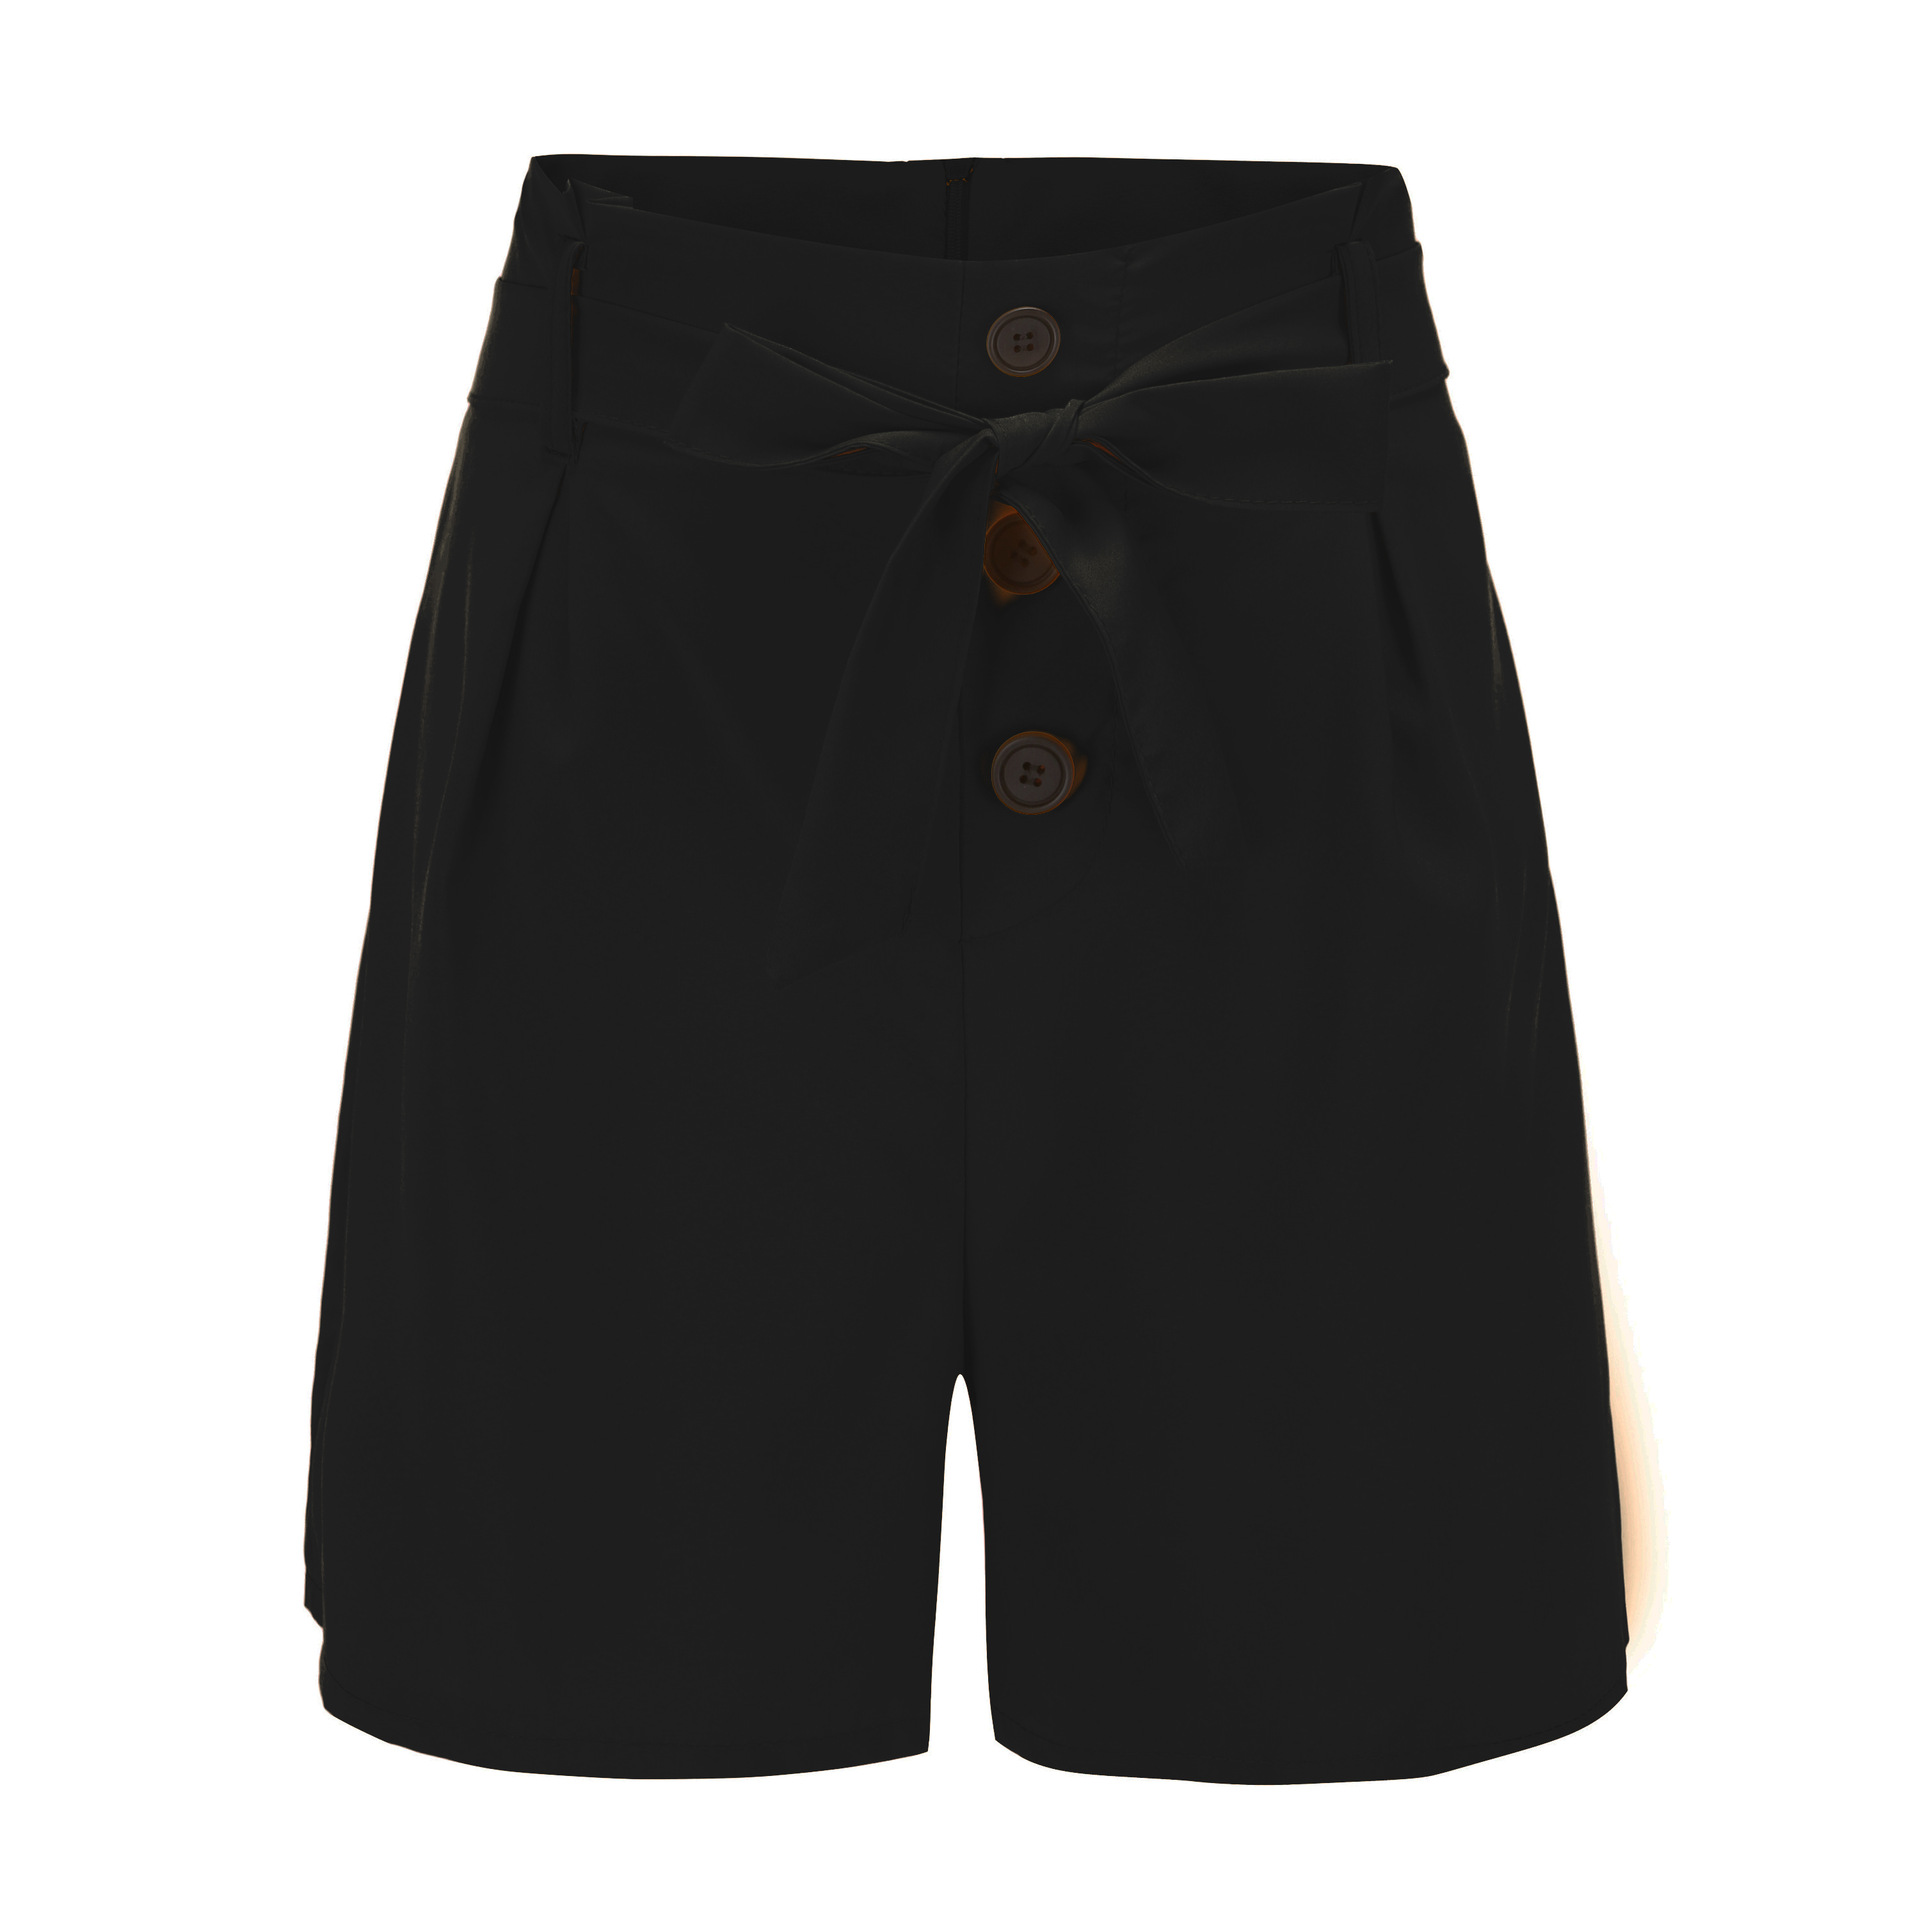 ONCE Women Shorts High Waist Buttons Sashes Elegant  Summer Zip-Up Skinny Shorts Solid Plus Size Pockets Summer Casual Shorts 7